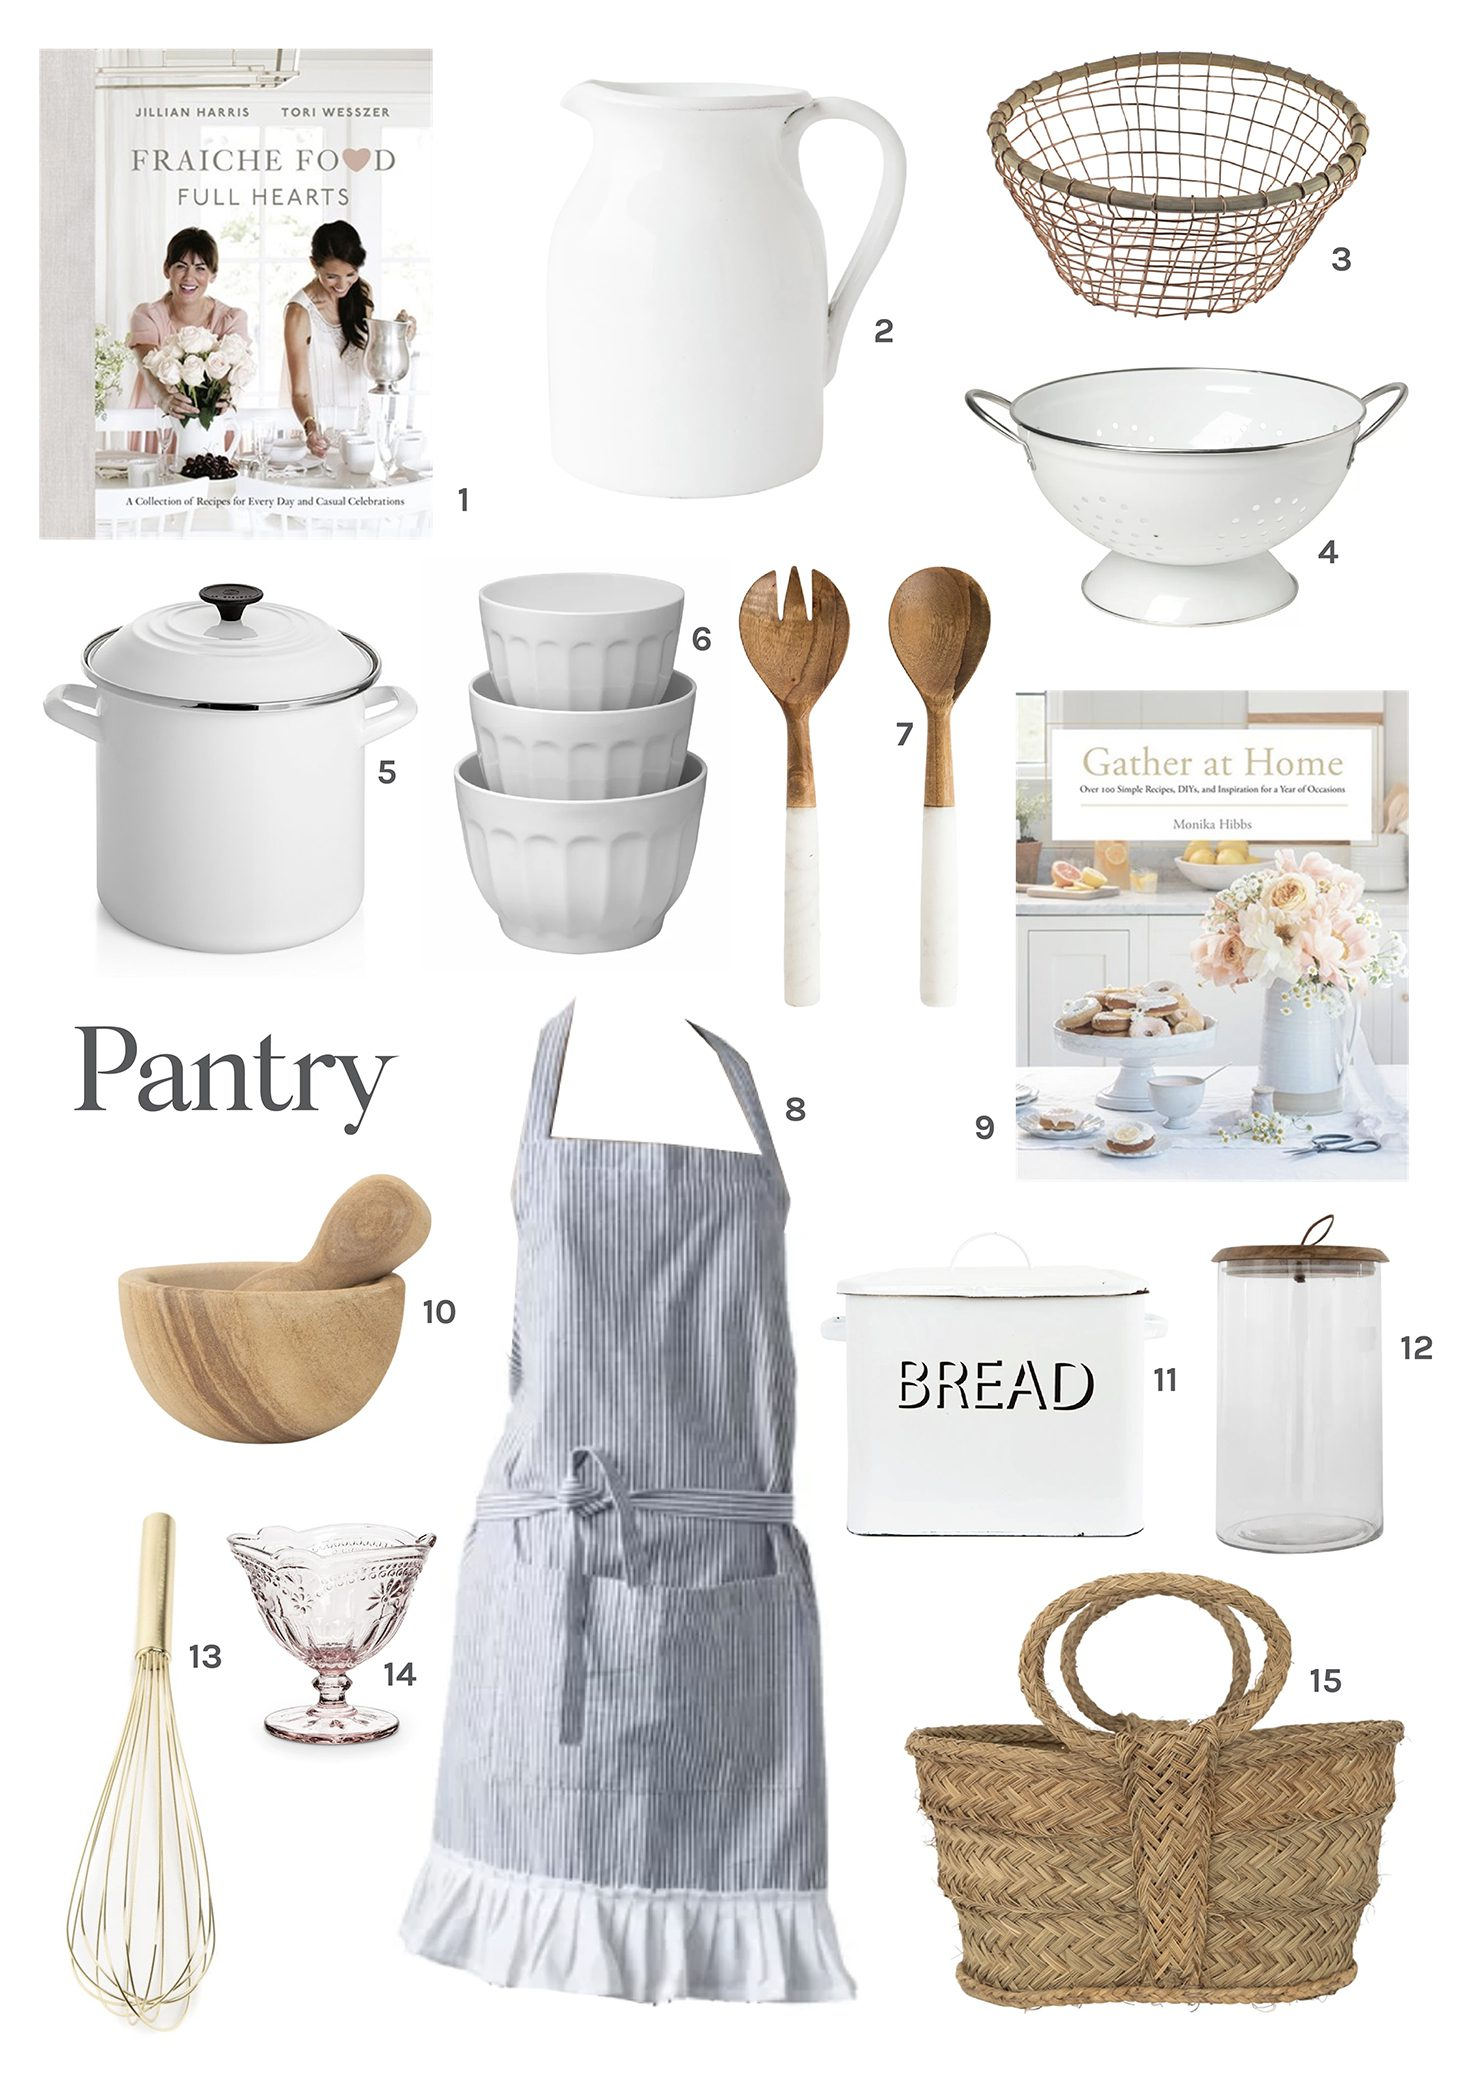 Jillian Harris Pantry Round-Up